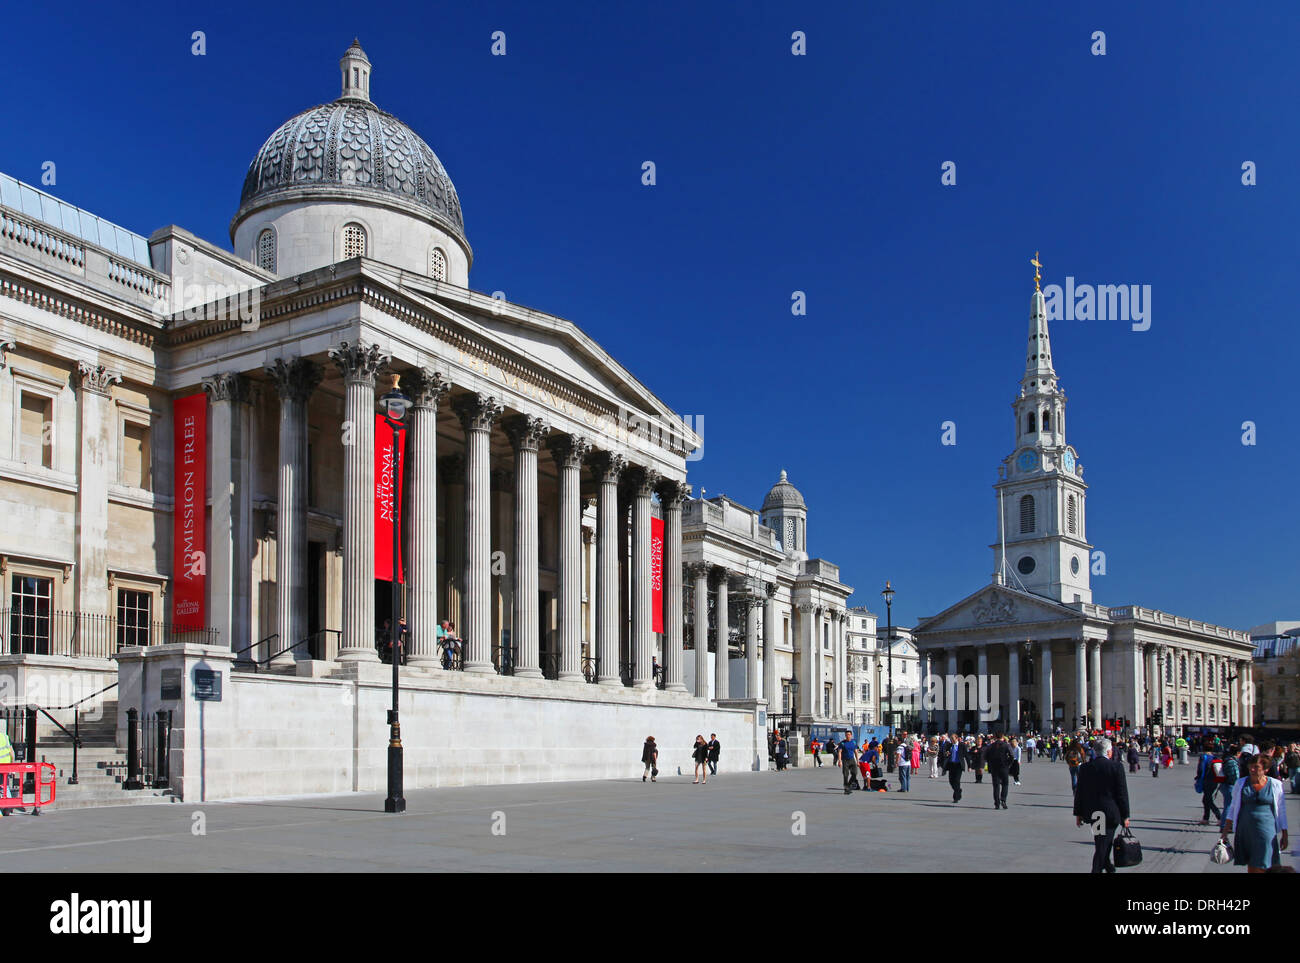 The National Gallery in London Stock Photo